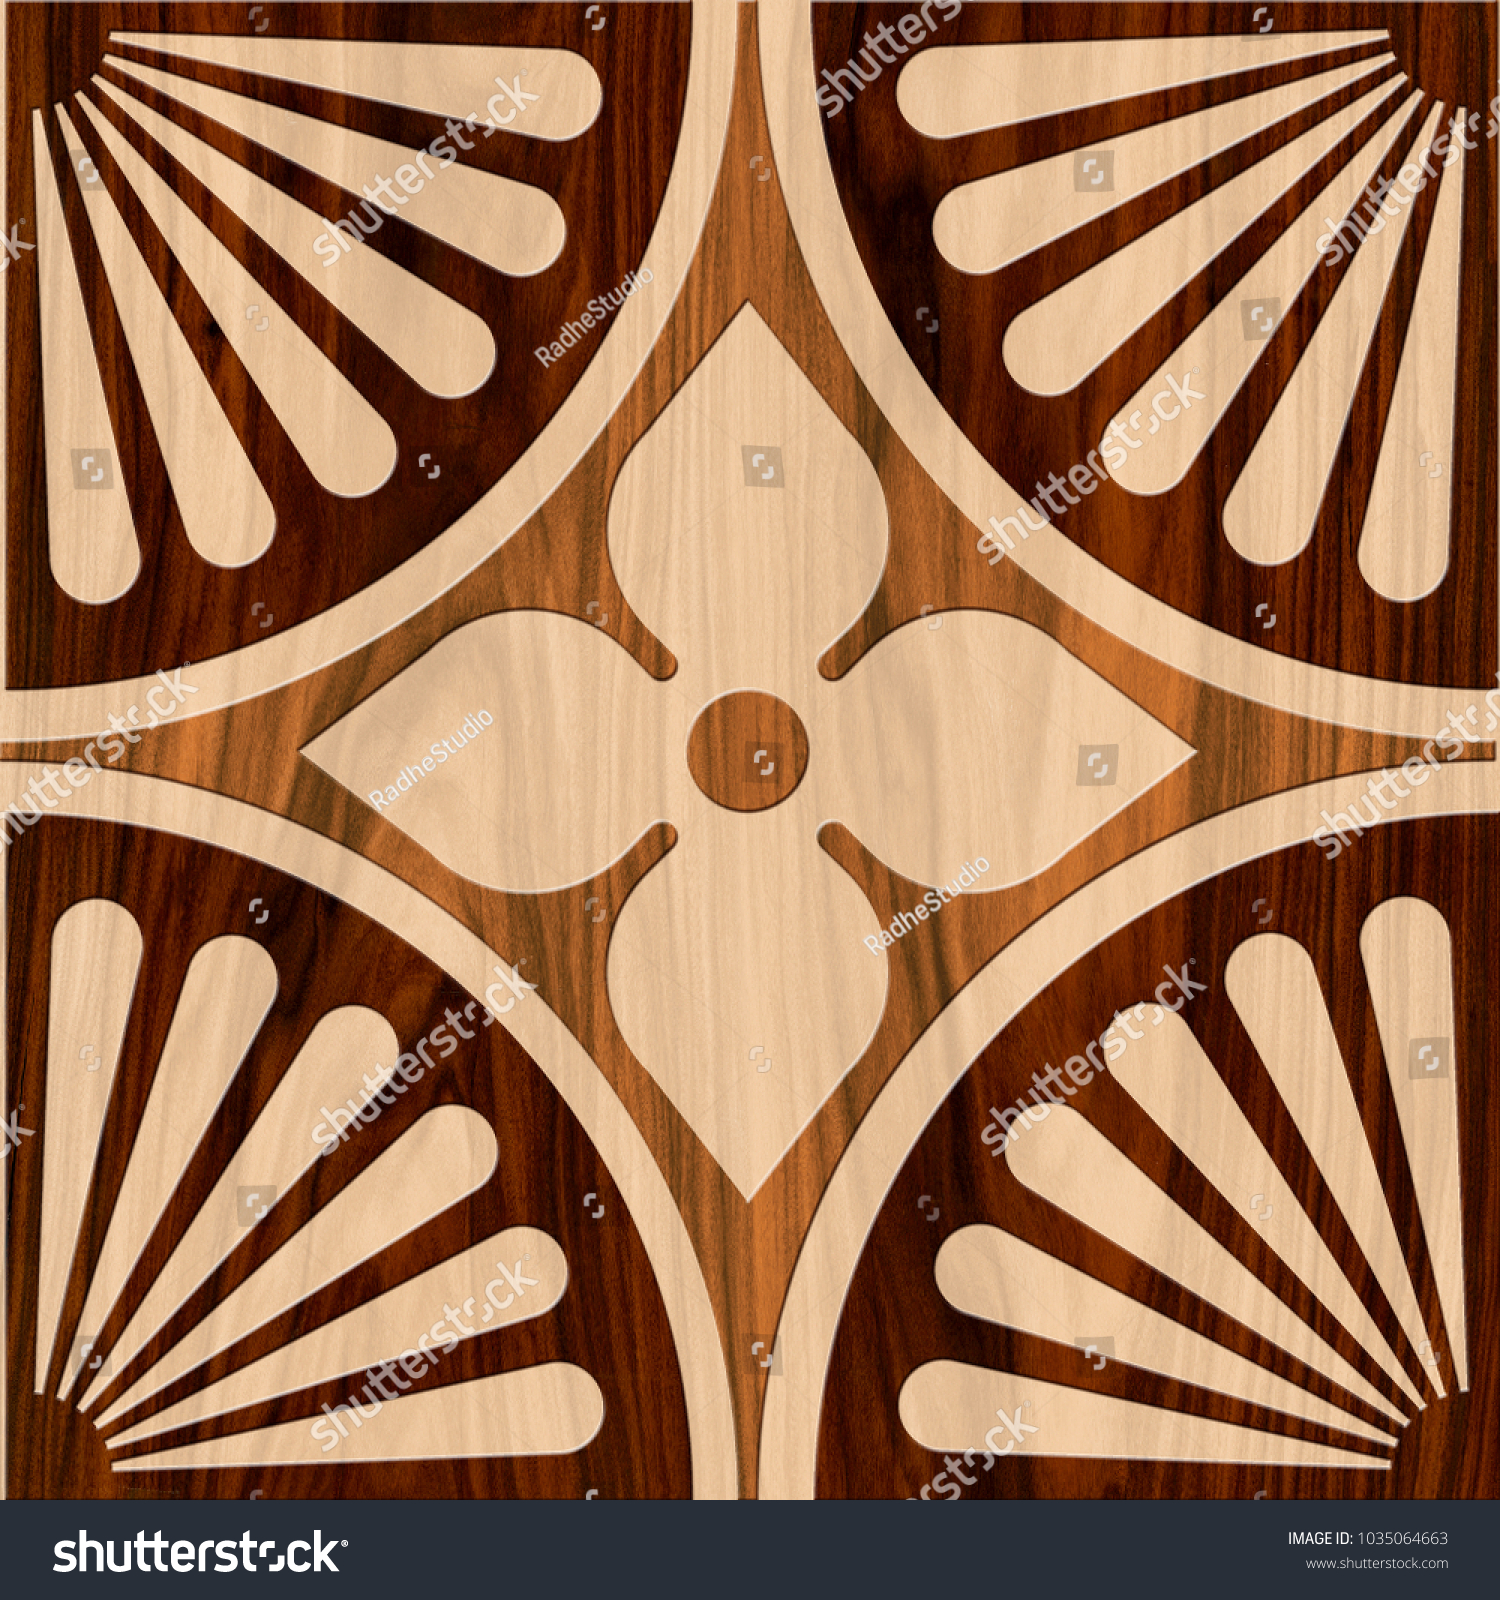 Old Fashioned Decorative Wood Wall Tiles Image - The Wall Art ...